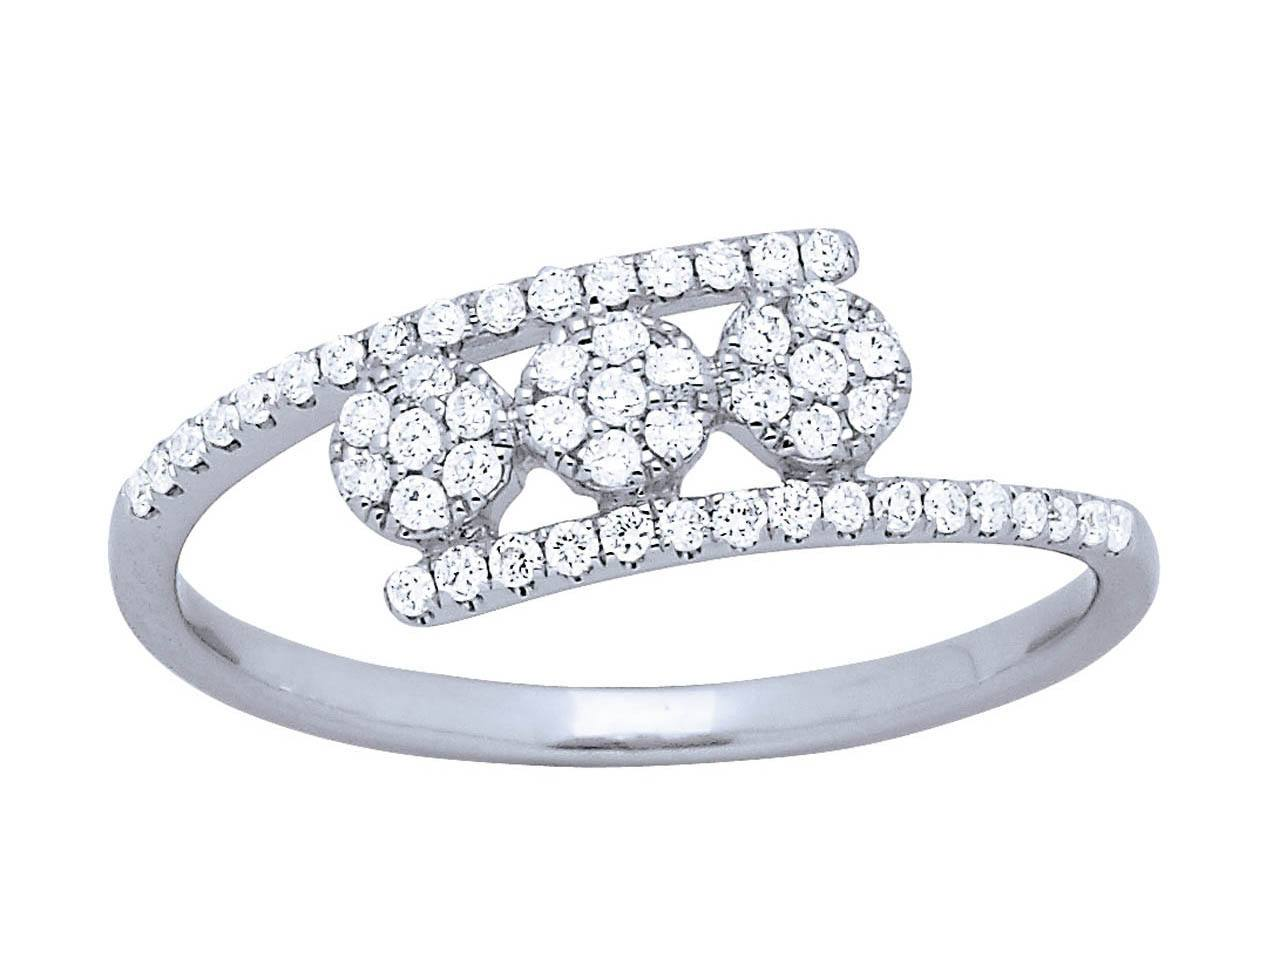 Bague trilogie tout sertie diamants, Or gris, diamants 0,22 ct, doigt 50